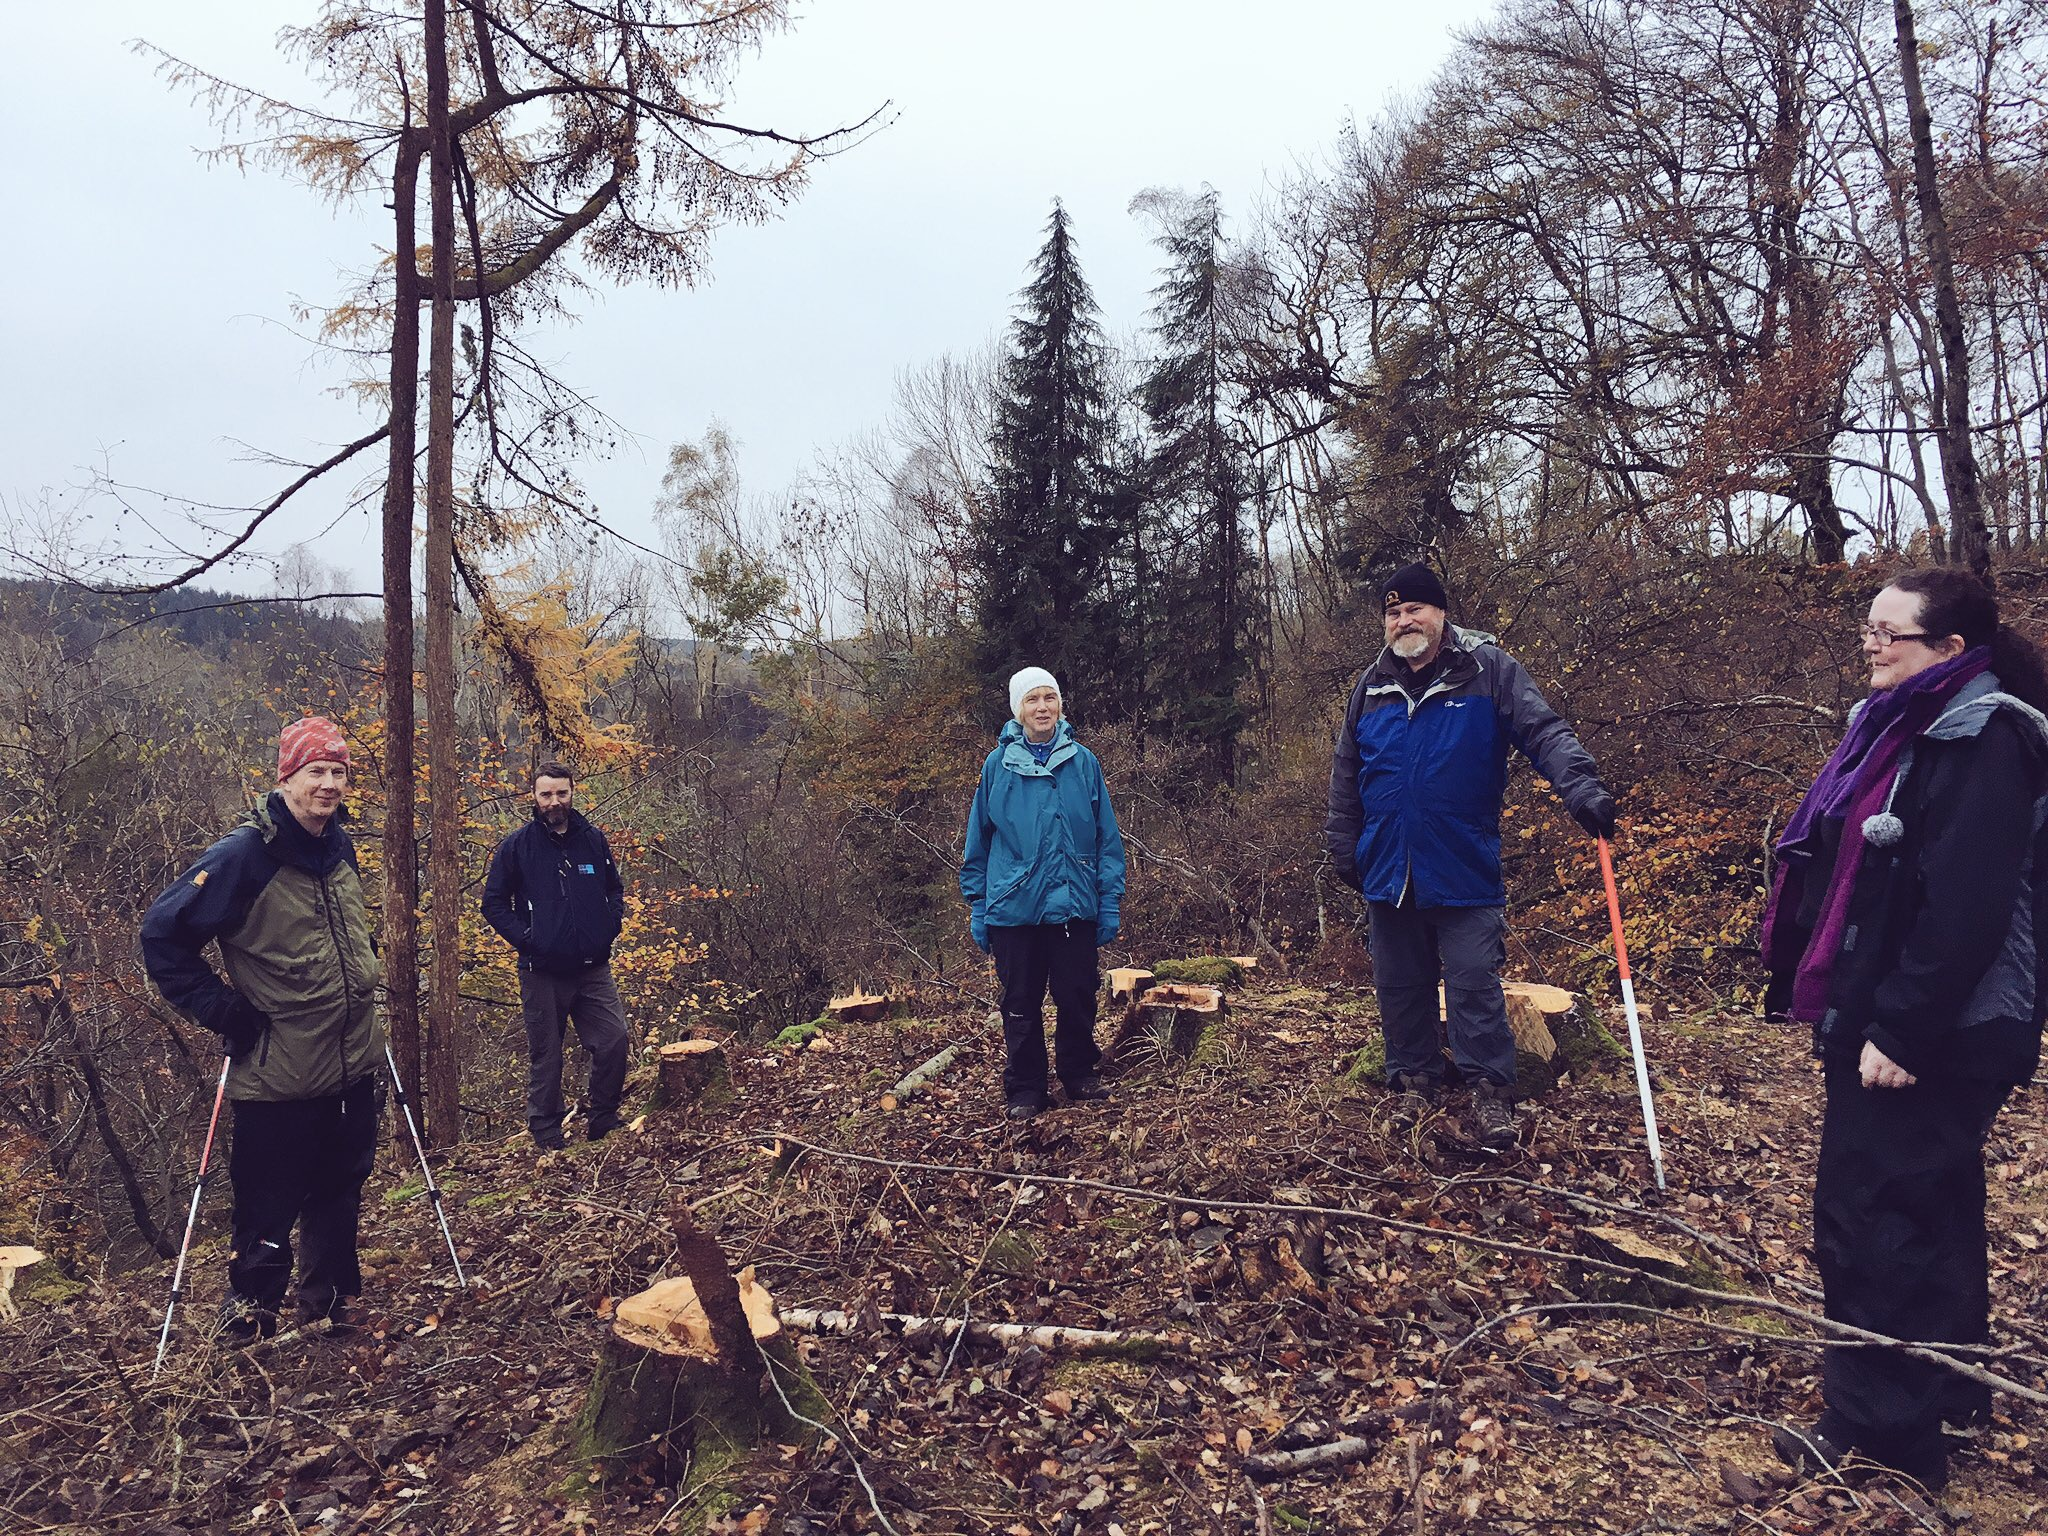 CAVLP Heritage help discover the ancient landscape of Cadzow earlier in the year